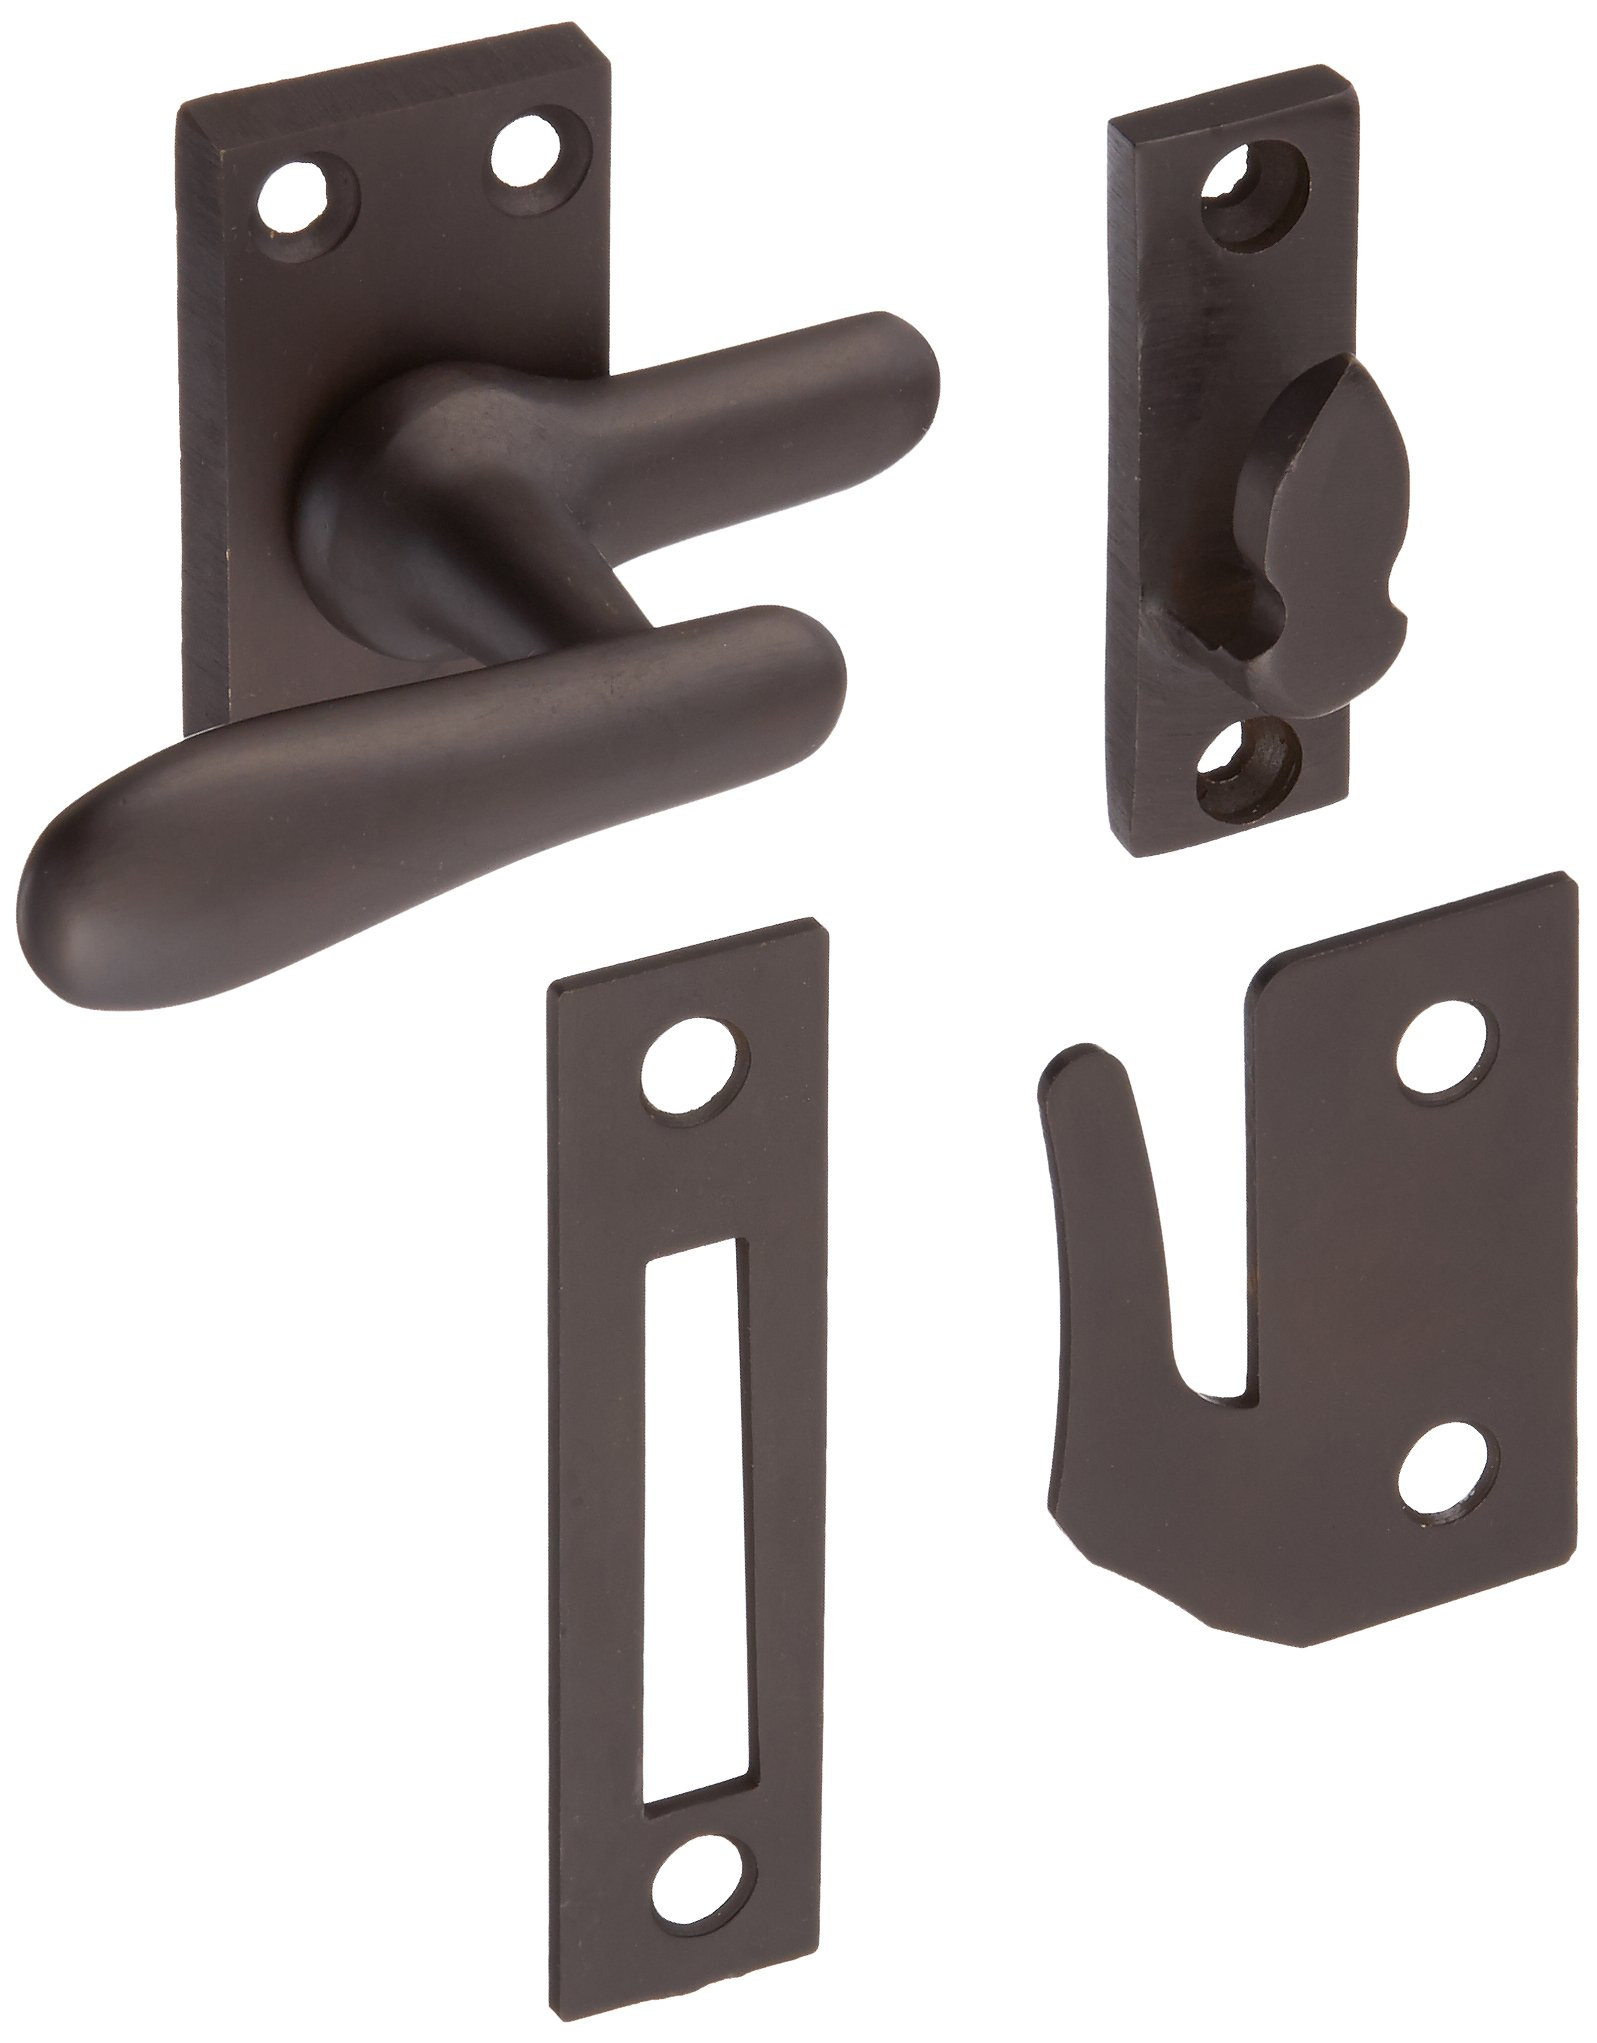 Deltana CF66U10B Casement Fastener Window Lock, Medium